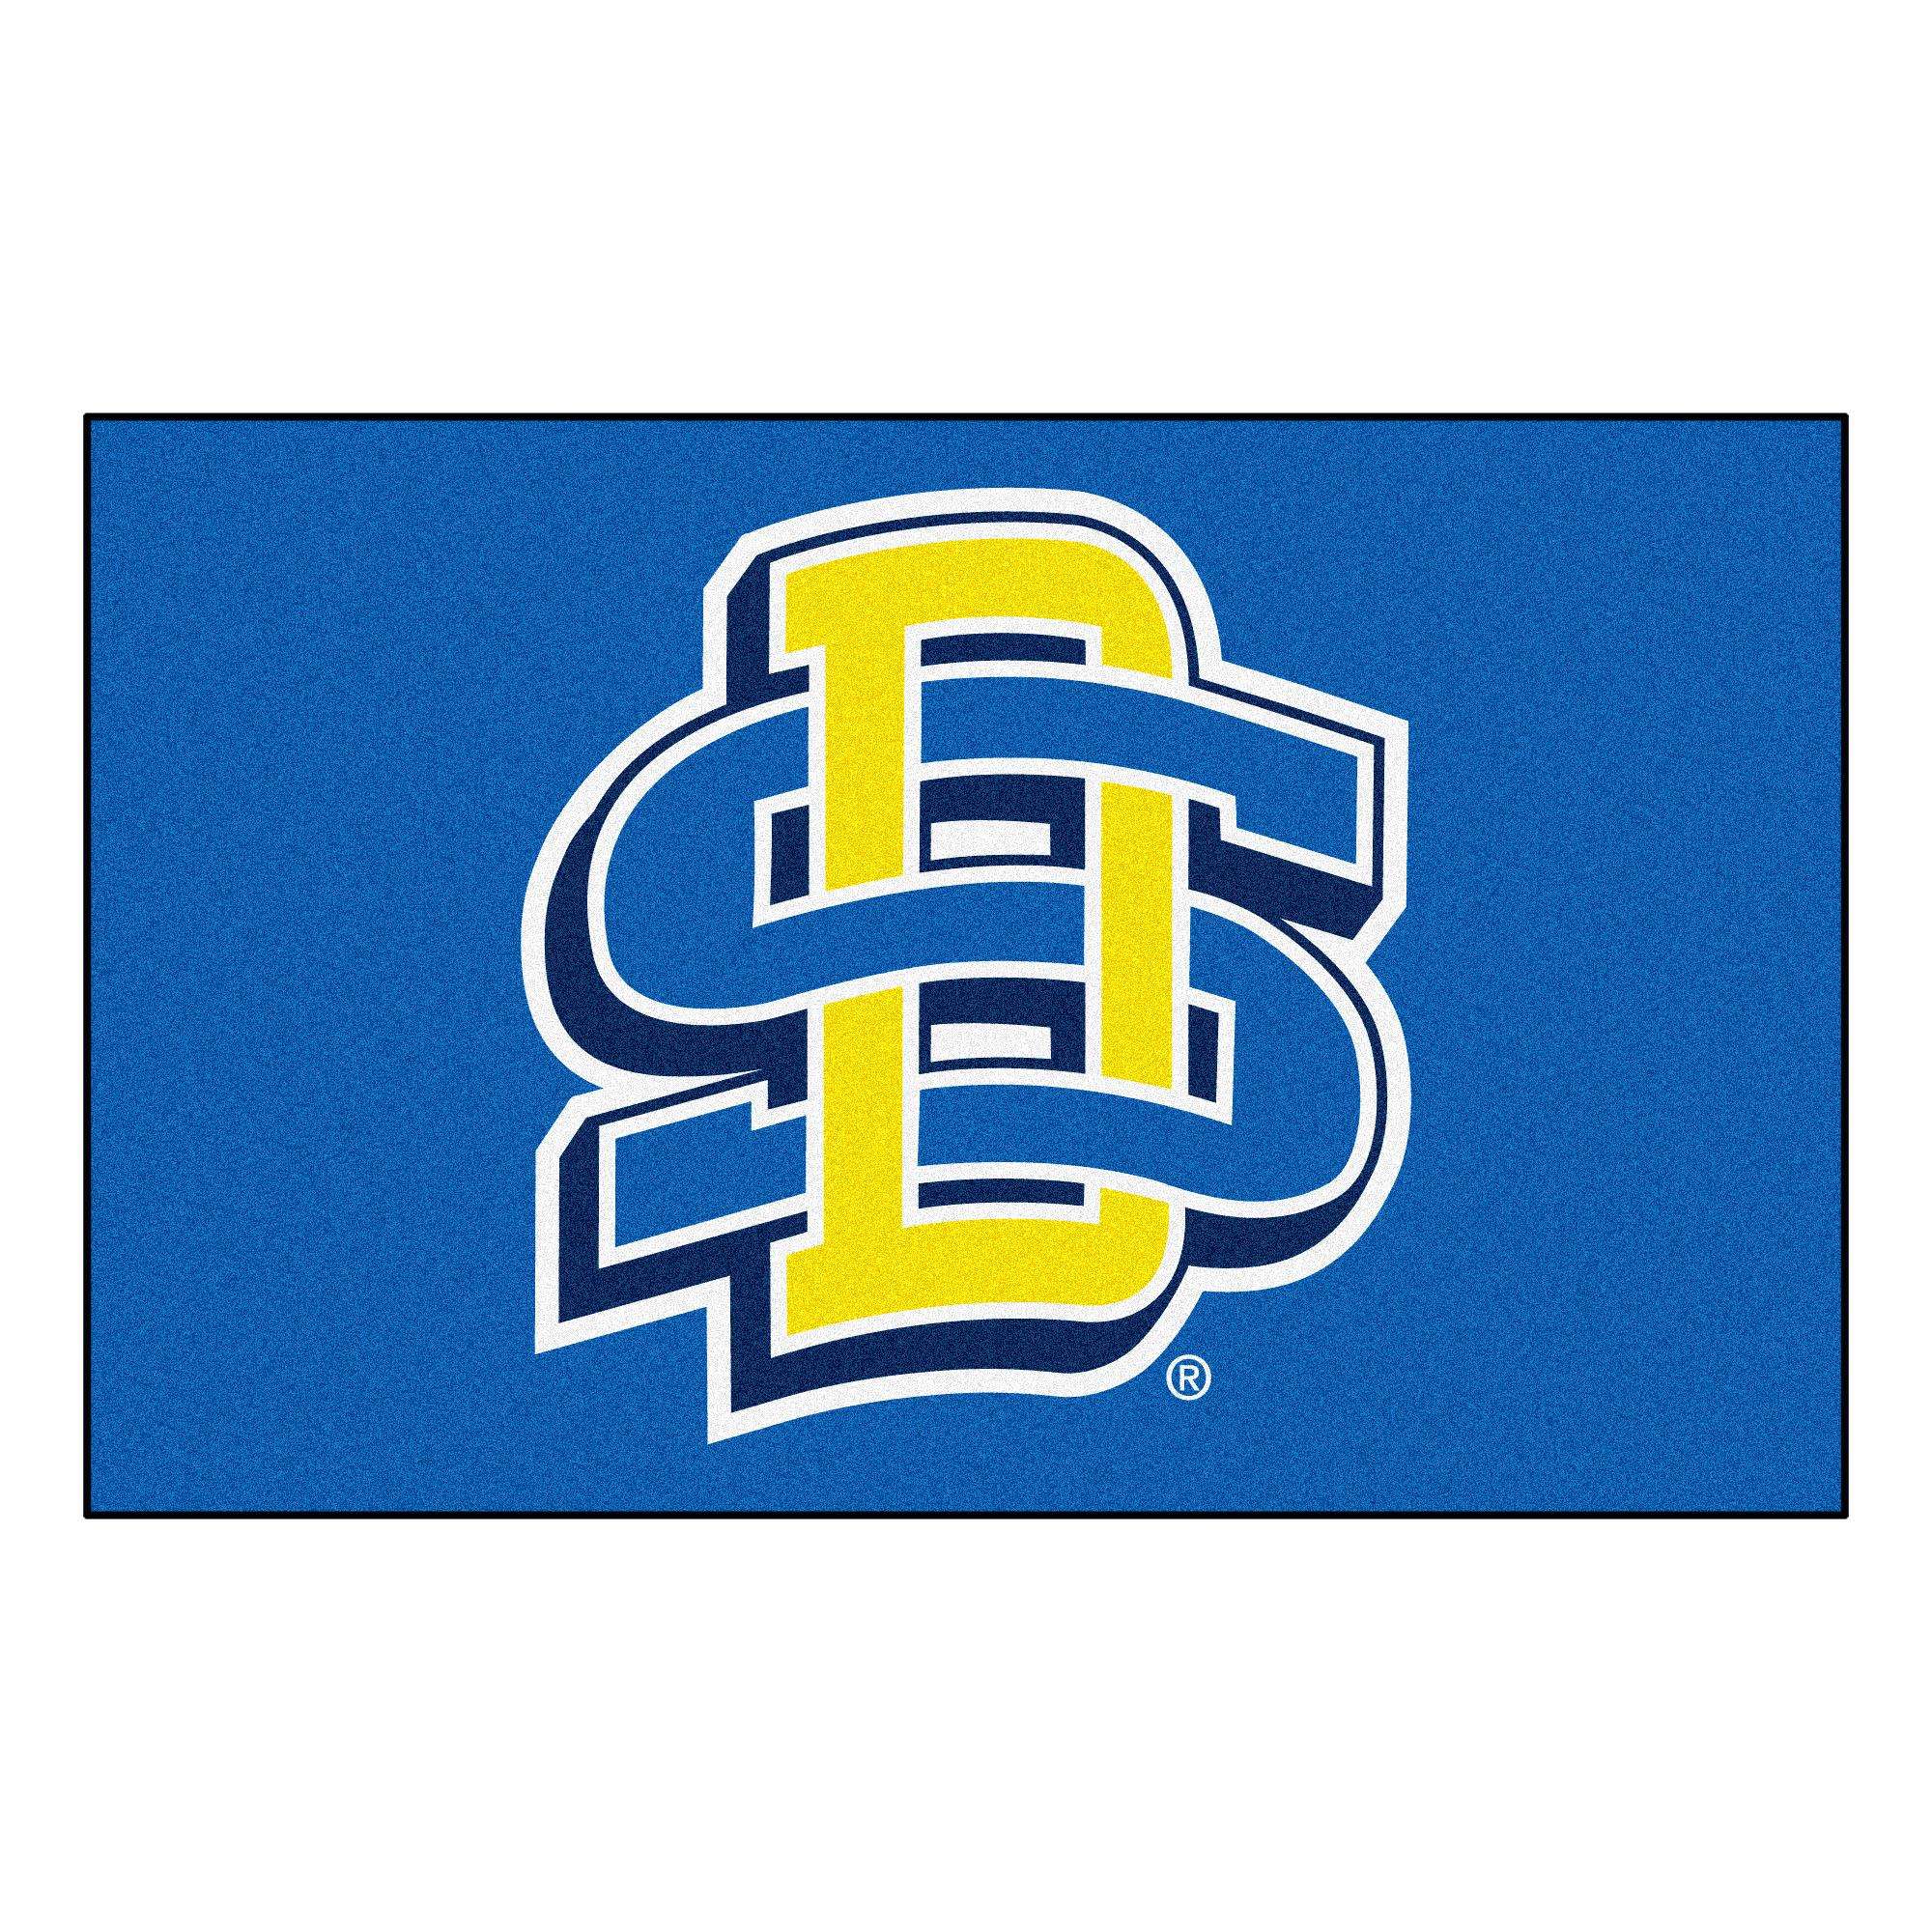 South Dakota State Logo South Dakota State University